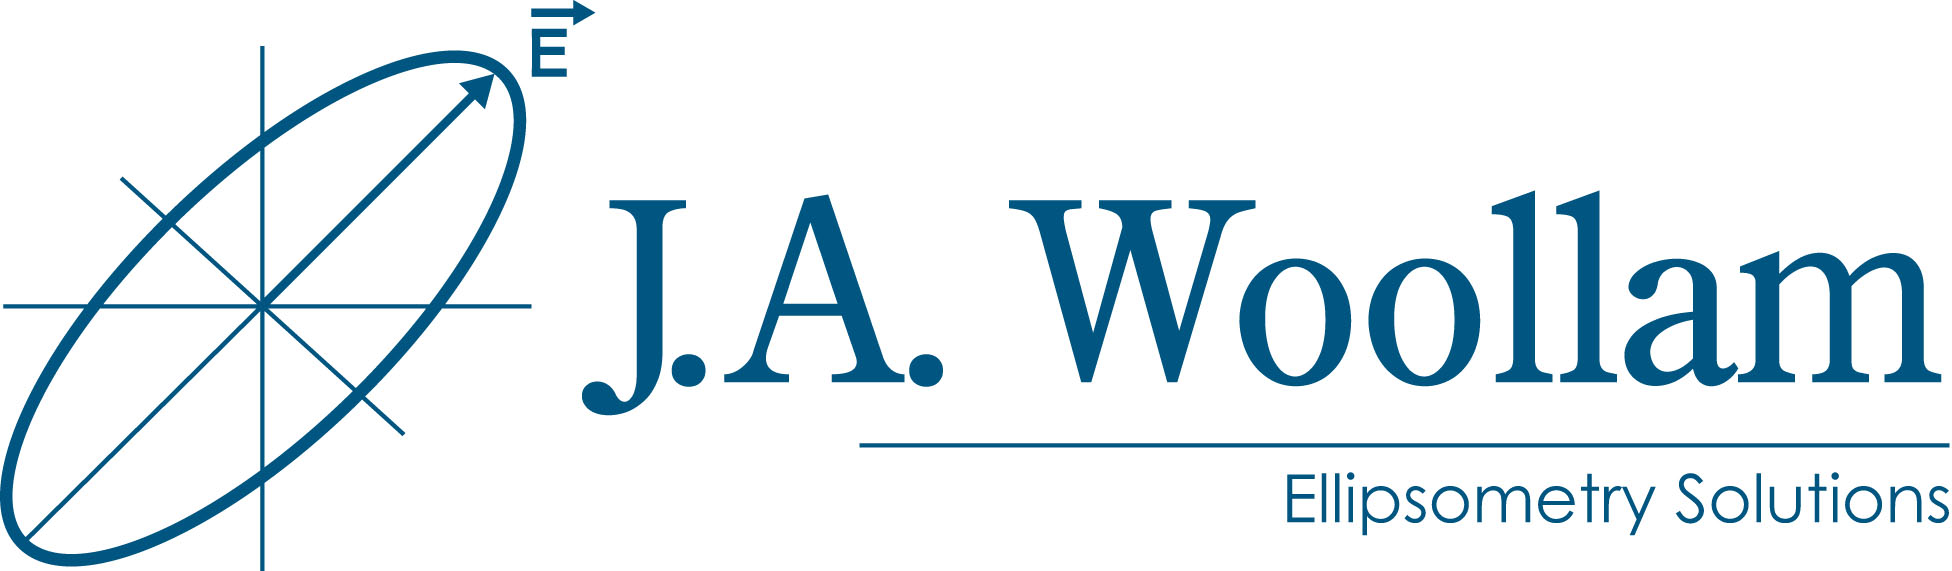 J.A. Woollam logo, links to www.jawoollam.com